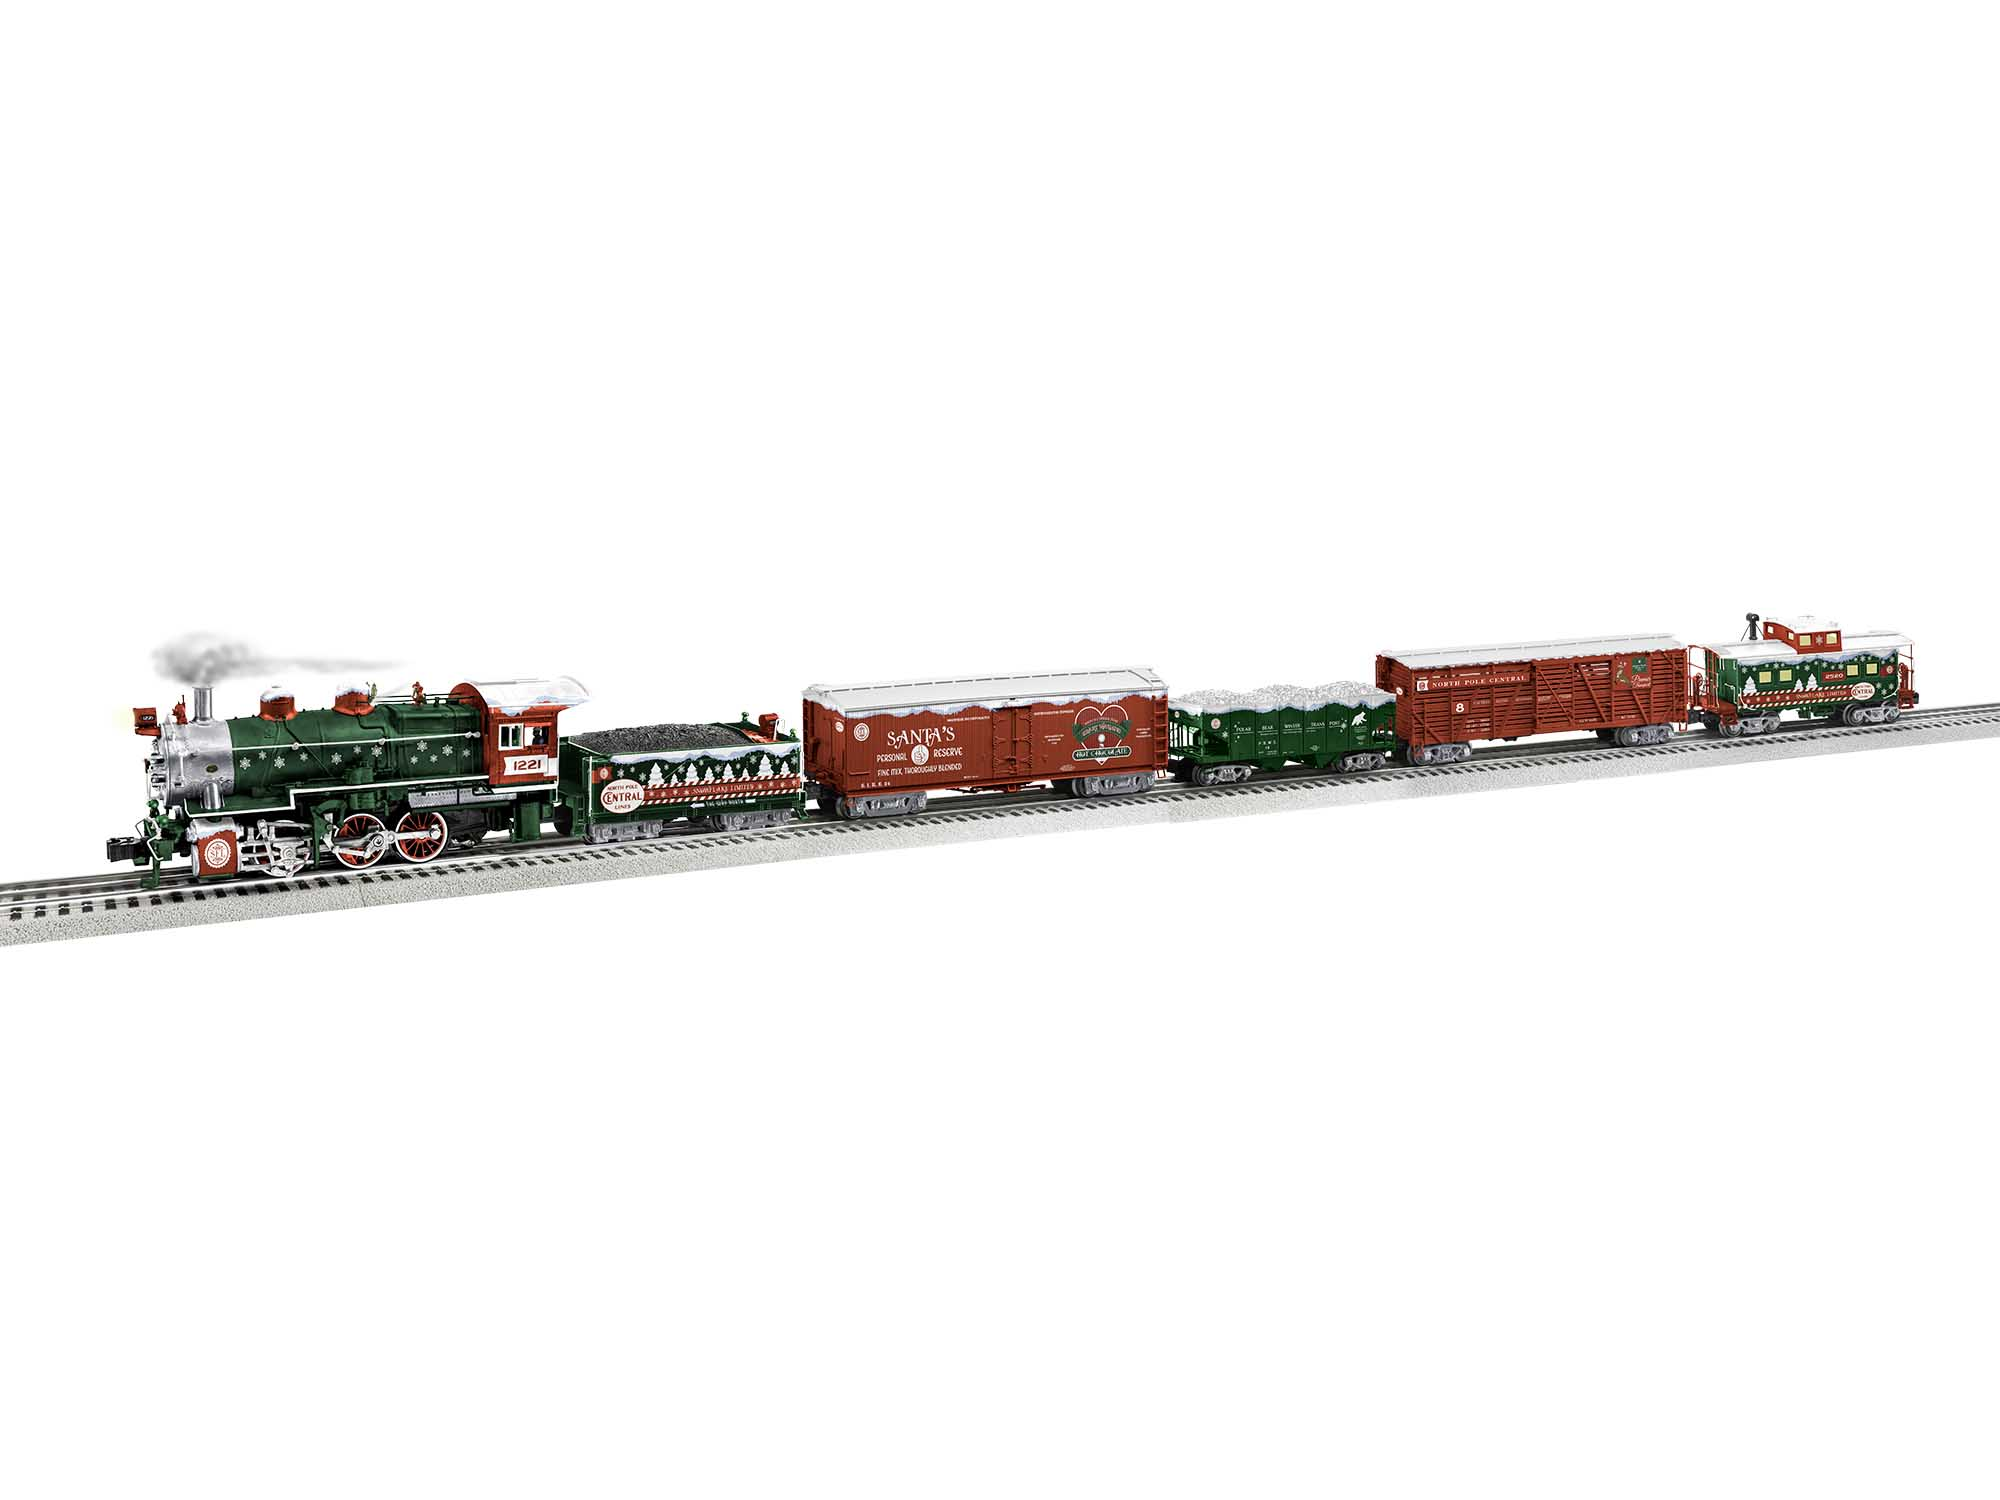 Lionel 2022140 O North Pole Central Snowflake Limited Set